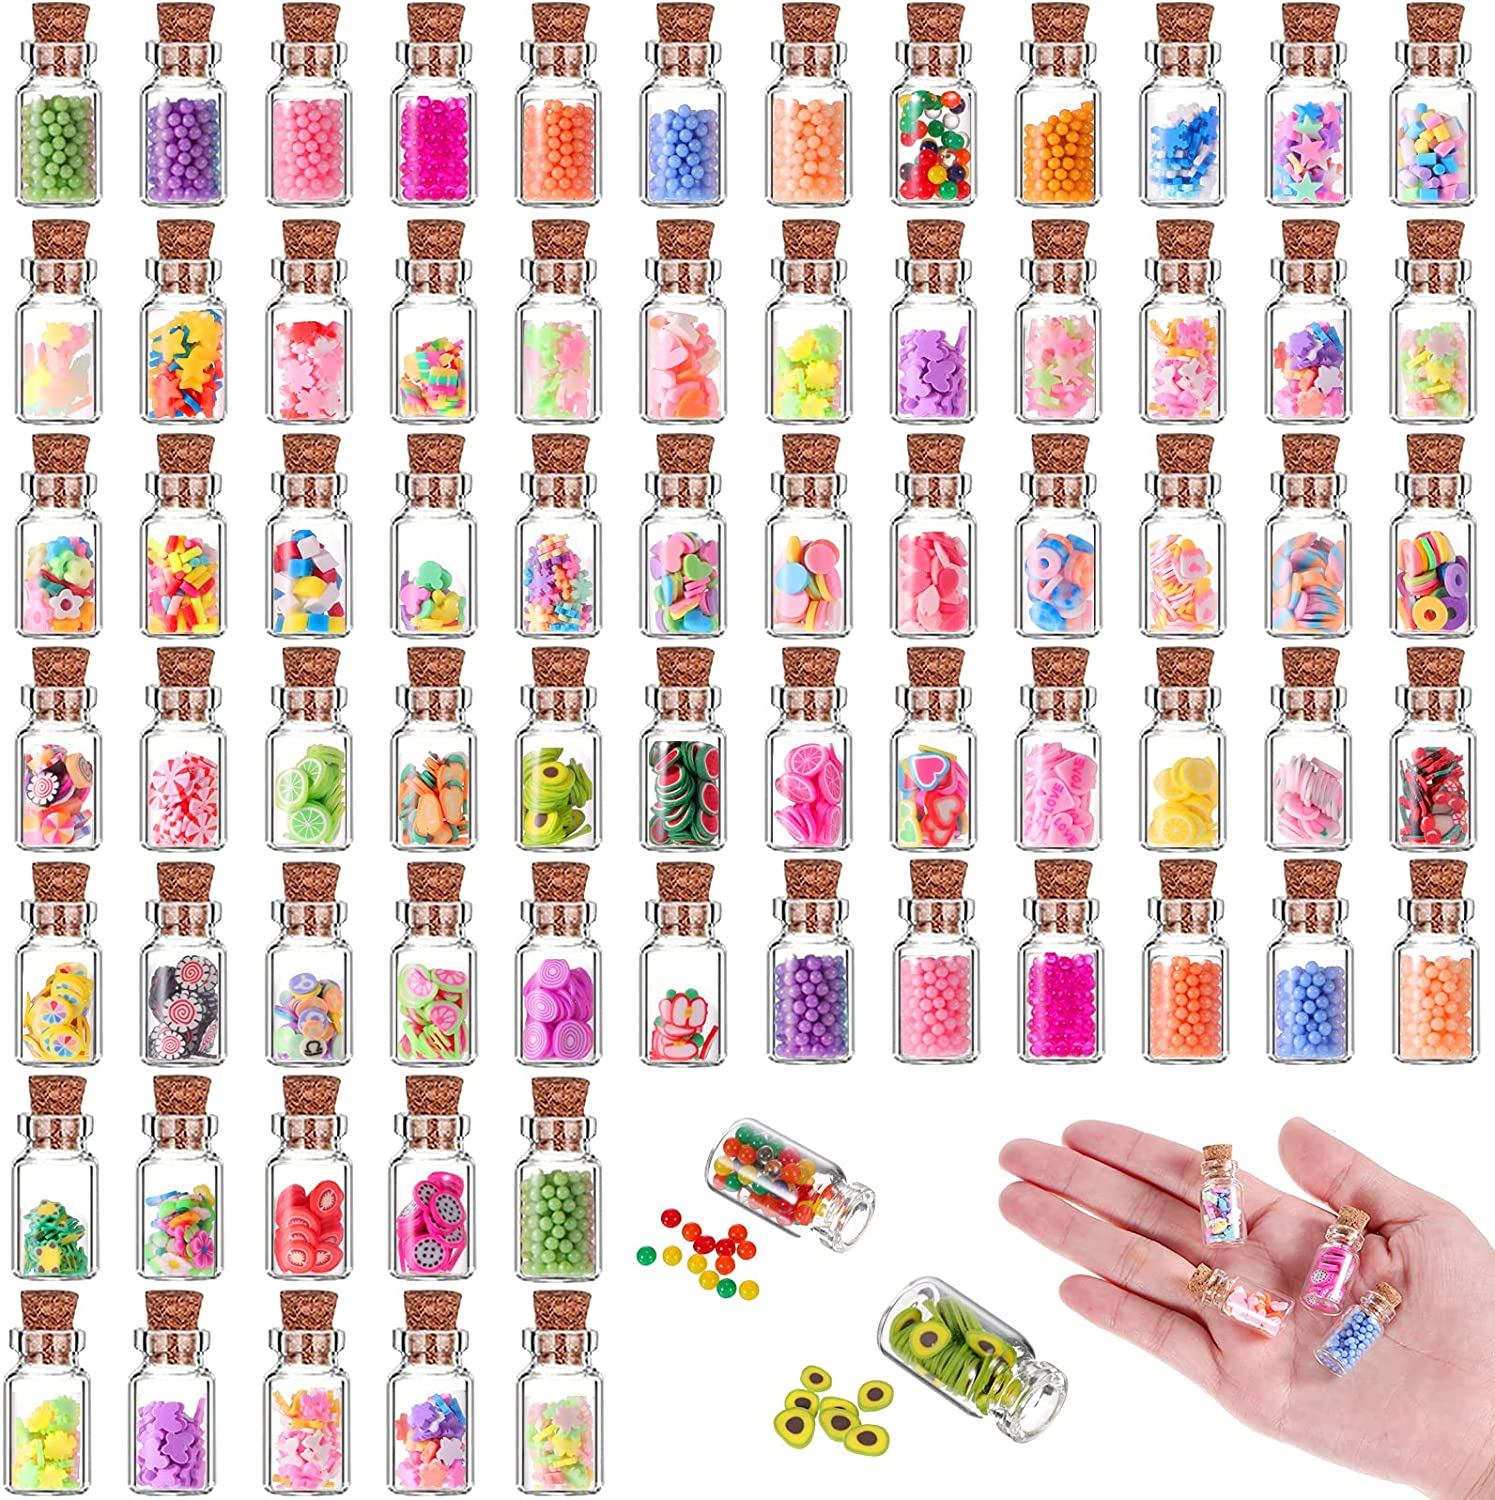 70 Pieces Cute Miniature Dollhouse Food Jar Glass Bottle 1:12 Pretend Play Doll House Kitchen Decoration 1:6 Fruit Candy Snack Mold Mini Kitchen Food Model Dollhouse Accessories for Girls Kids Boys